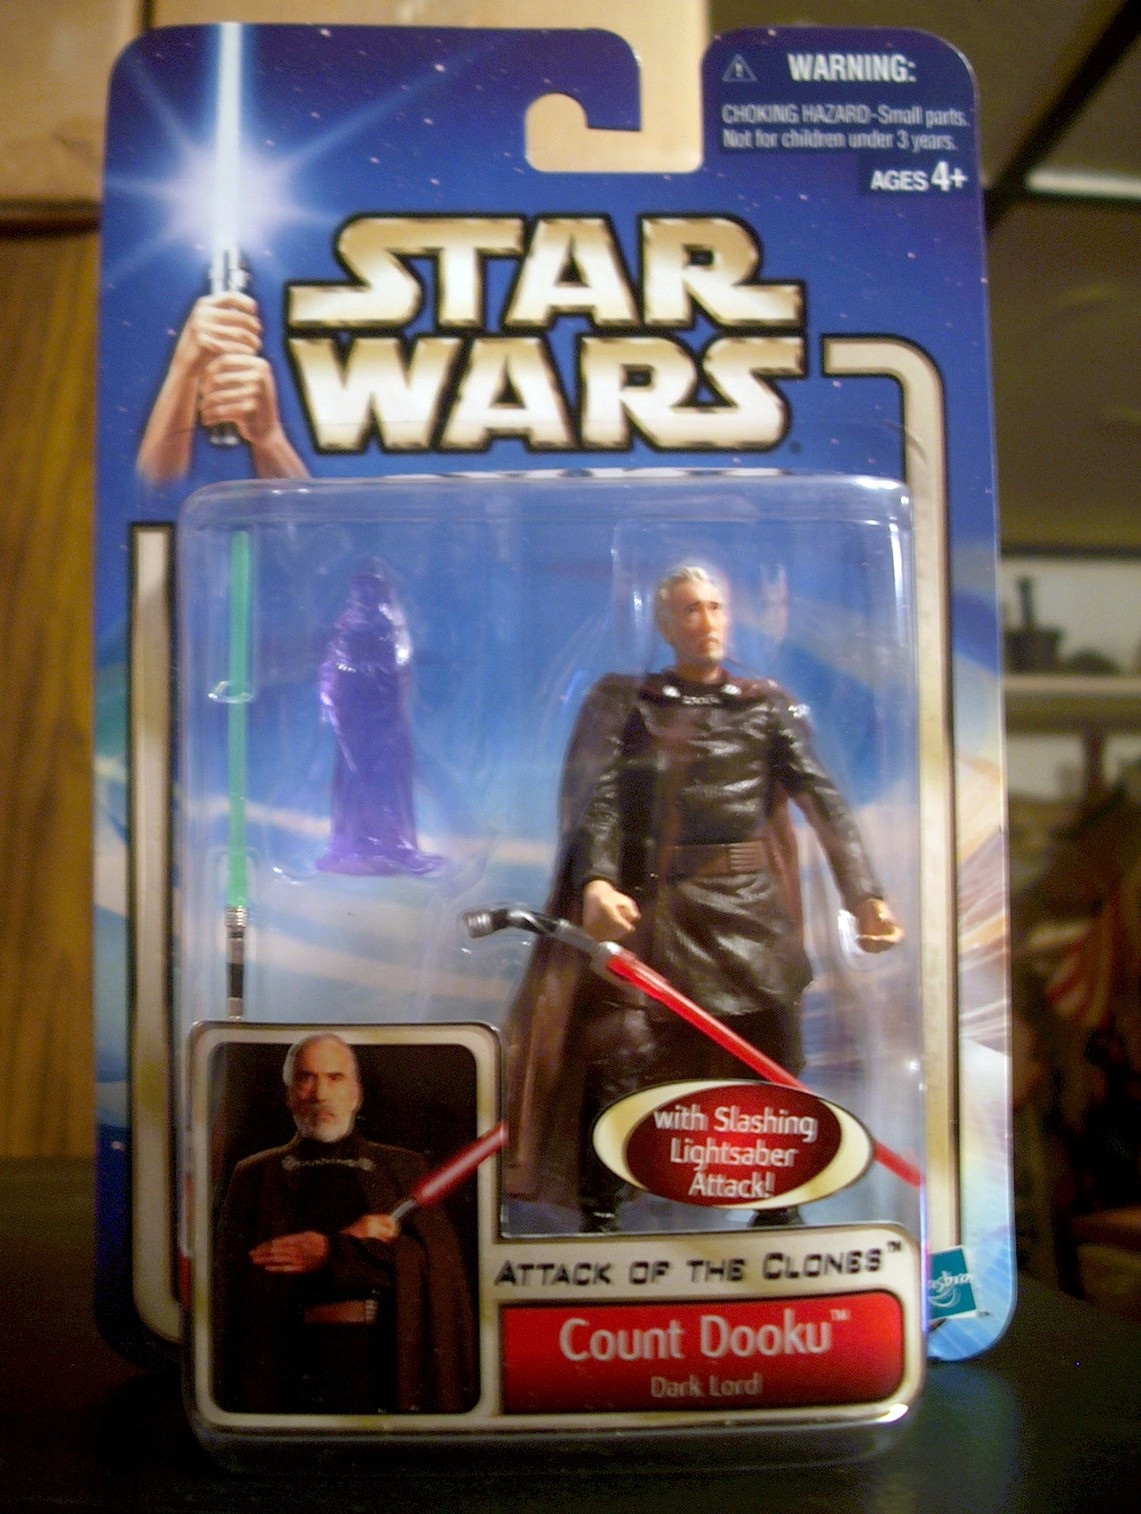 Count Dooku - Dark Lord - with Slashing Lightsaber Attack!